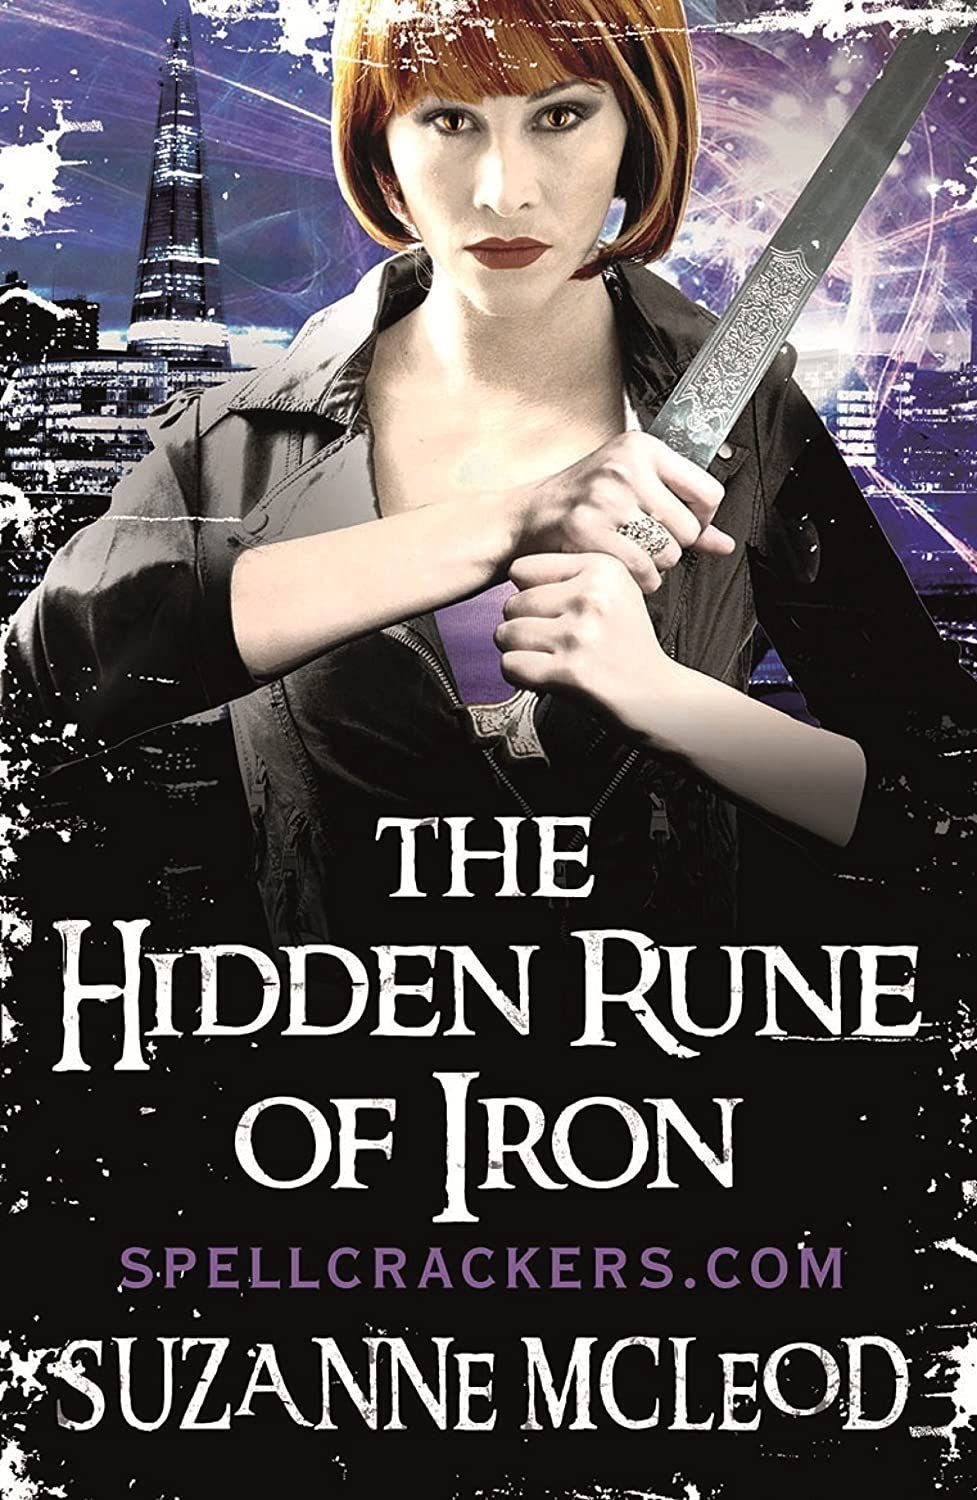 Pdf The Hidden Rune Of Iron Spellcrackers Com 5 By Suzanne Mcleod